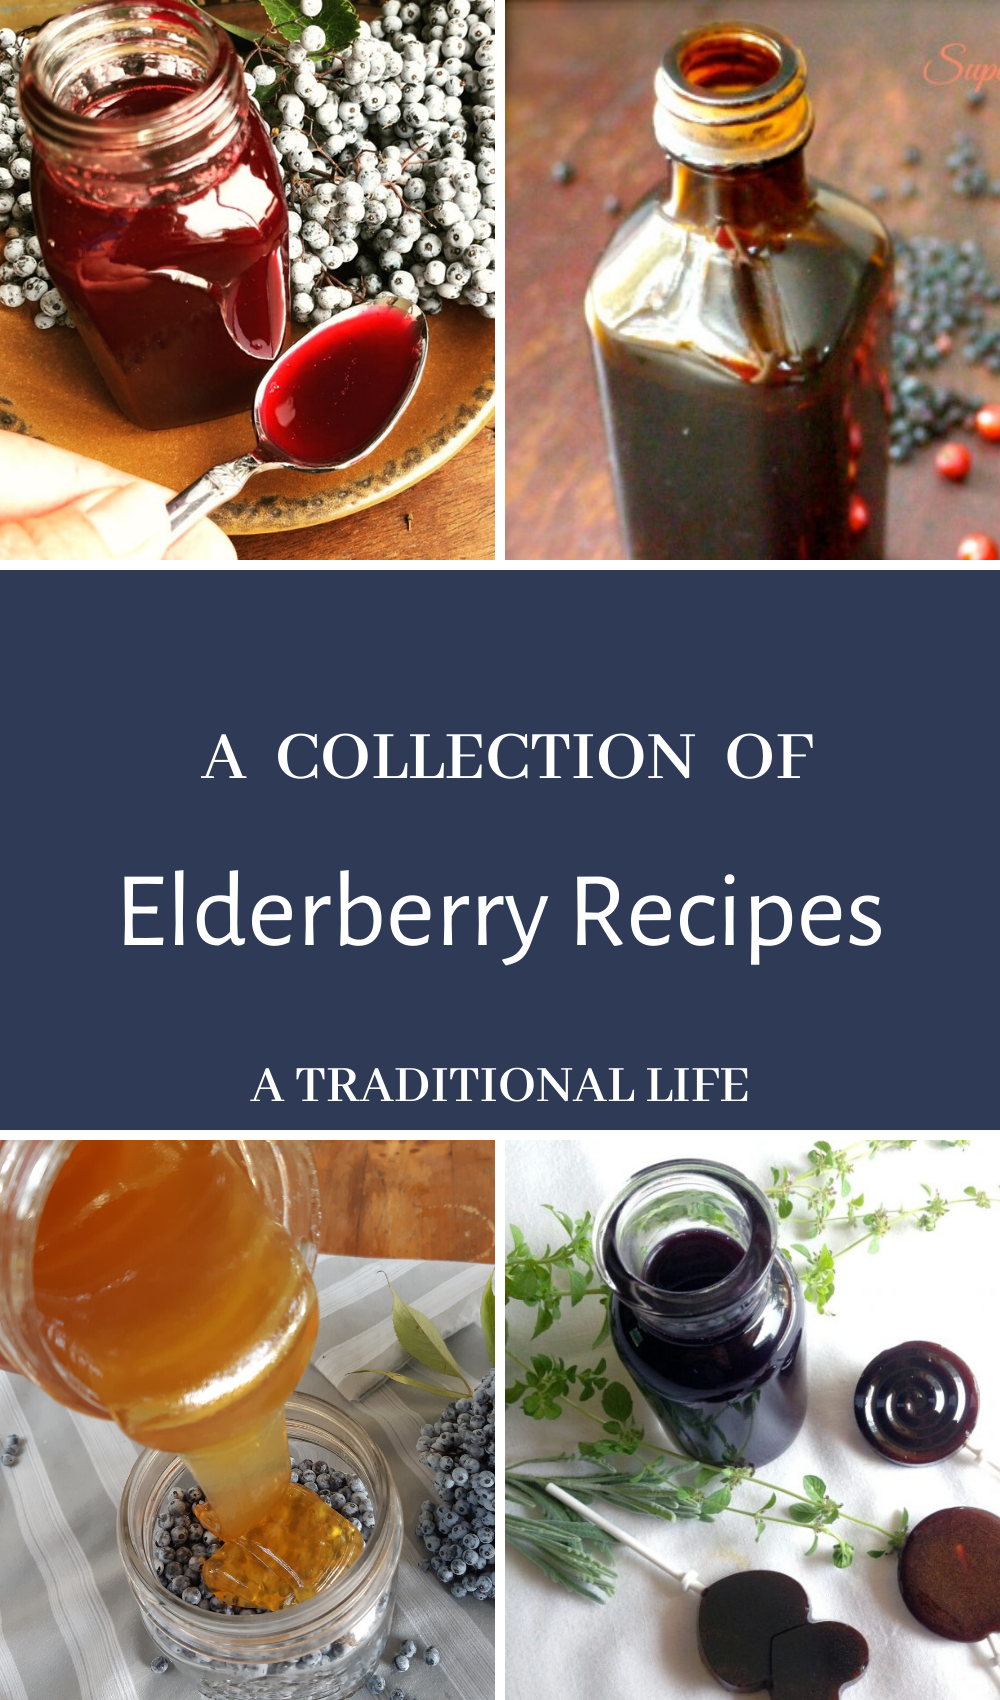 7 Elderberry recipes for your natural medicine cabinet